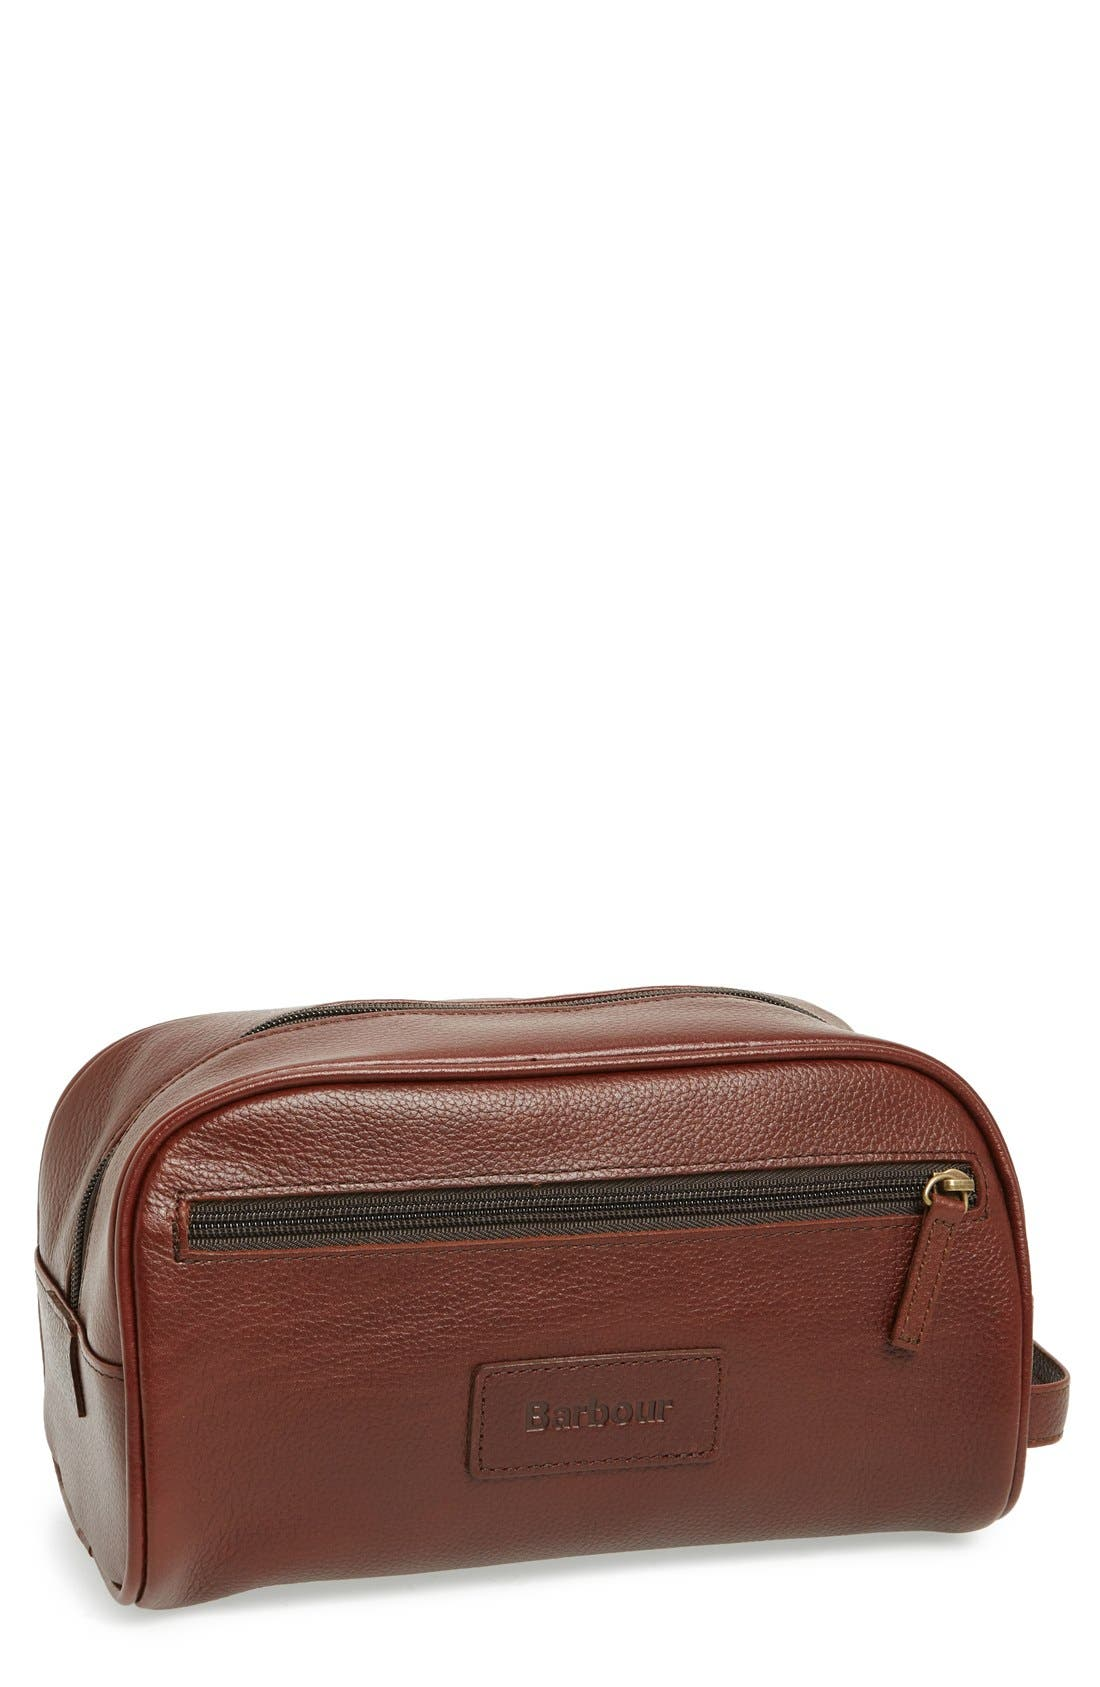 Leather Travel Kit,                         Main,                         color, 204